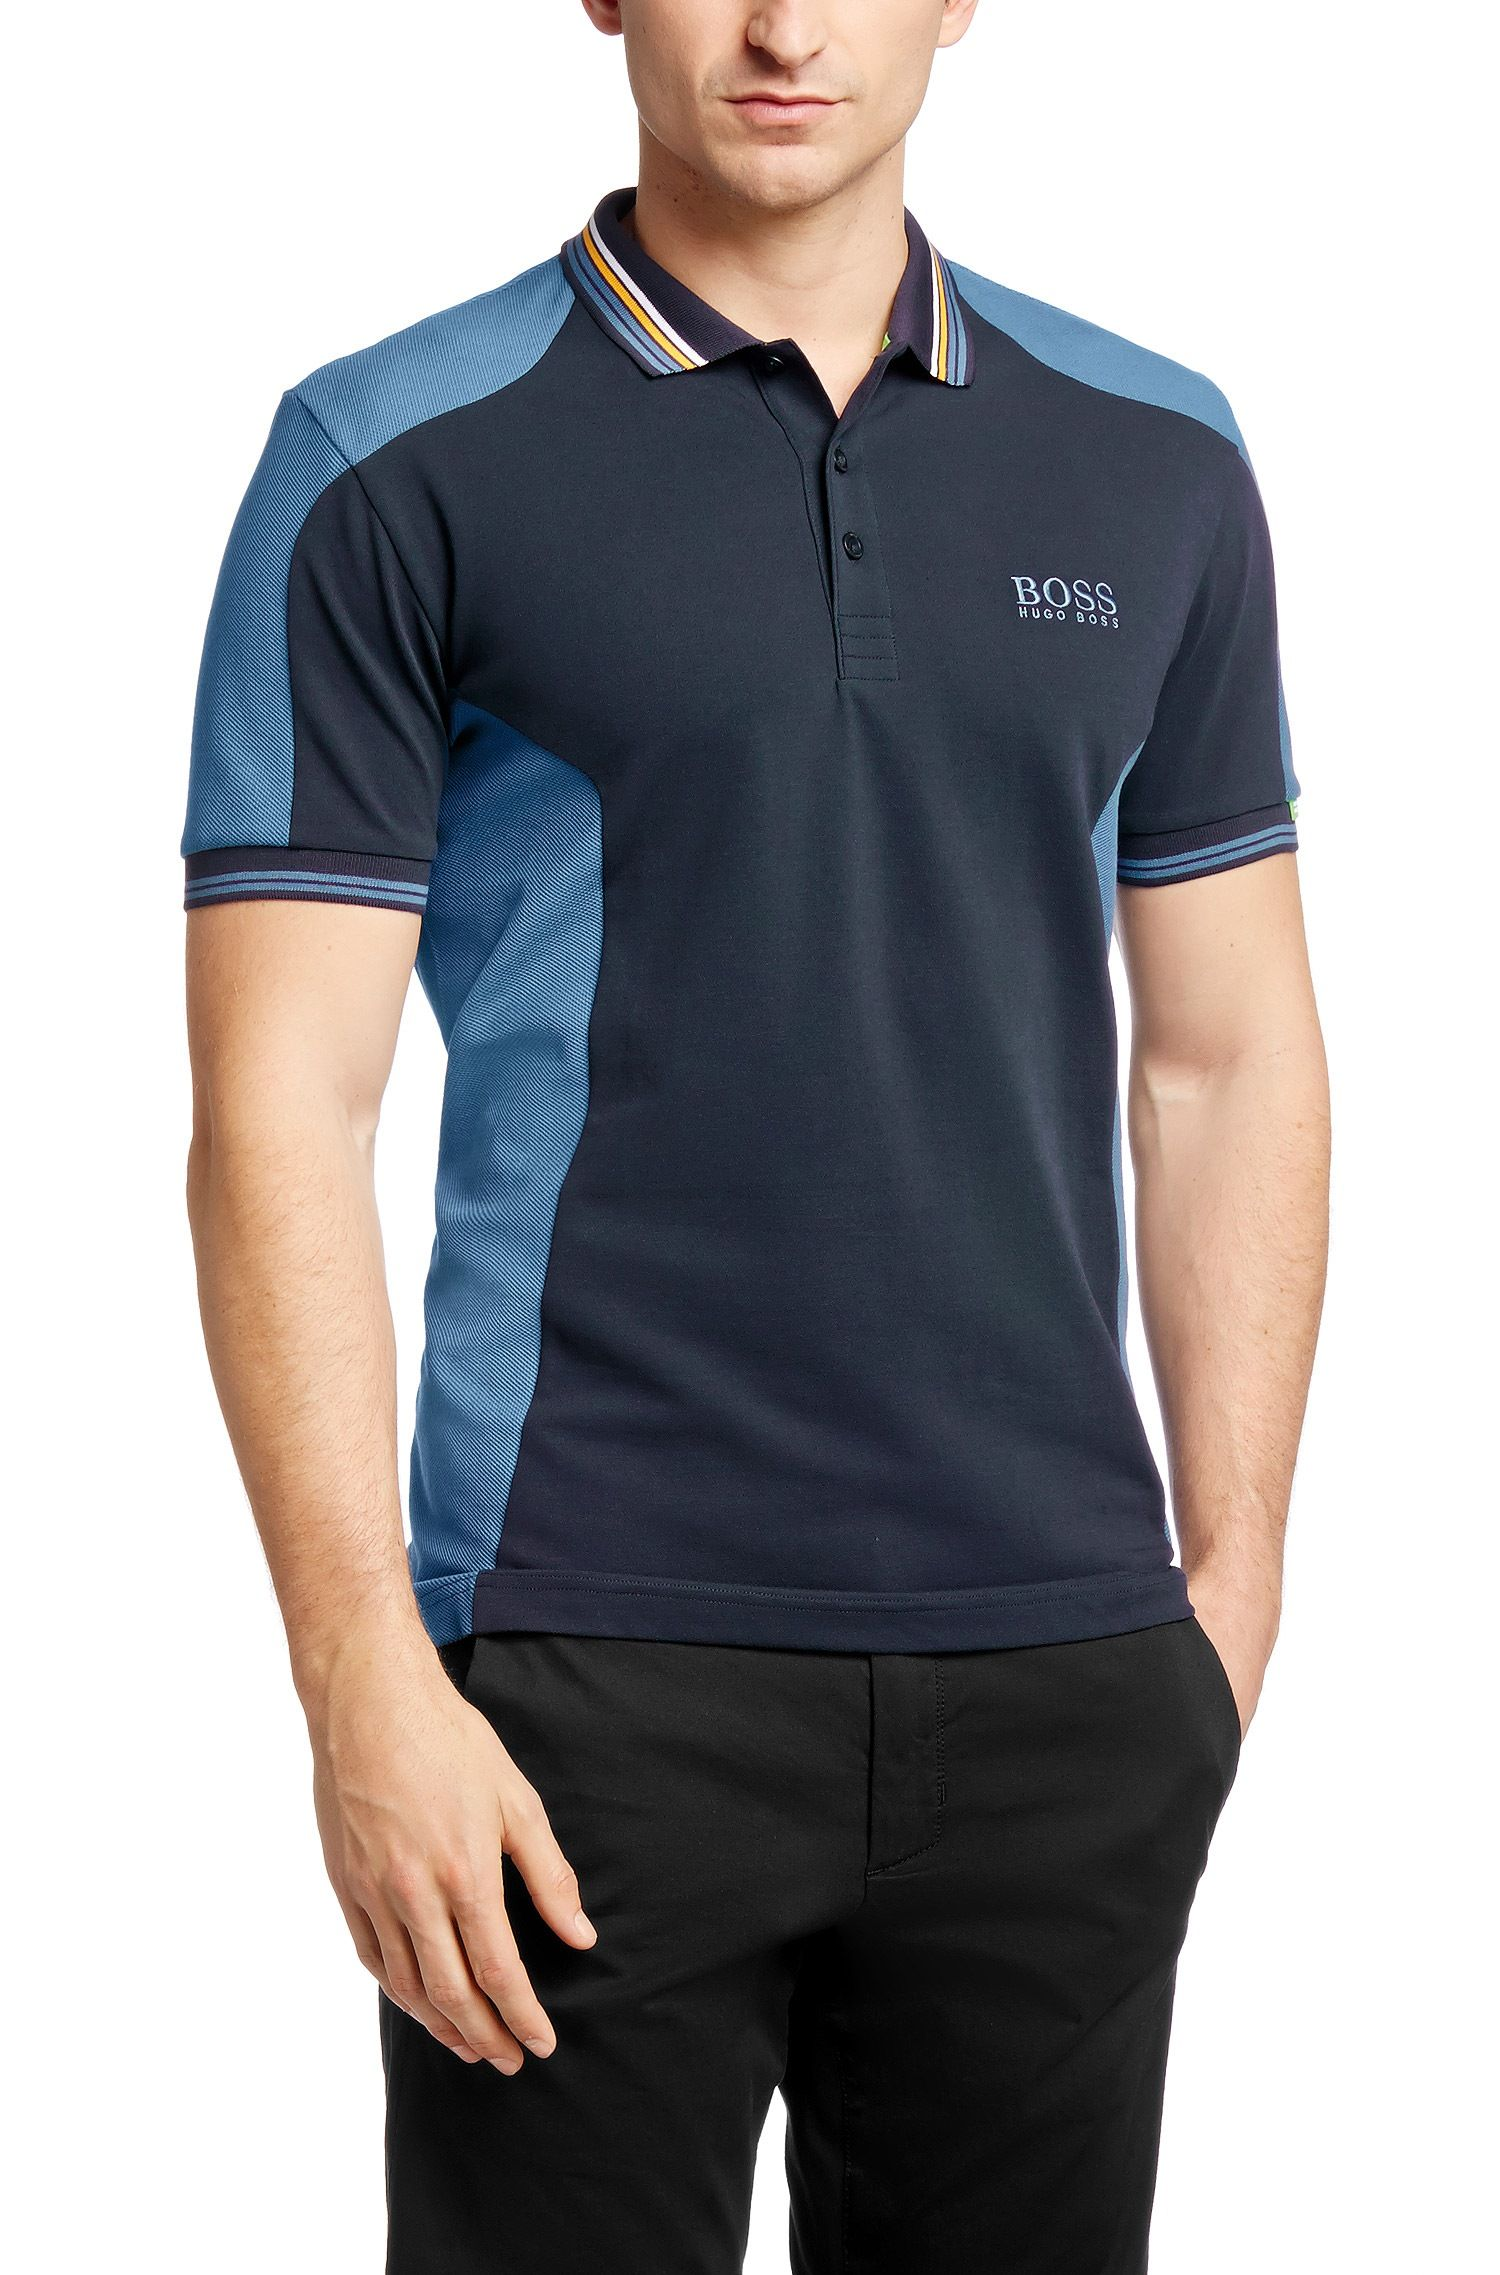 67f7c8e37 Regular-fit golf polo shirt 'Paddy MK' from the Martin Kaymer Collection